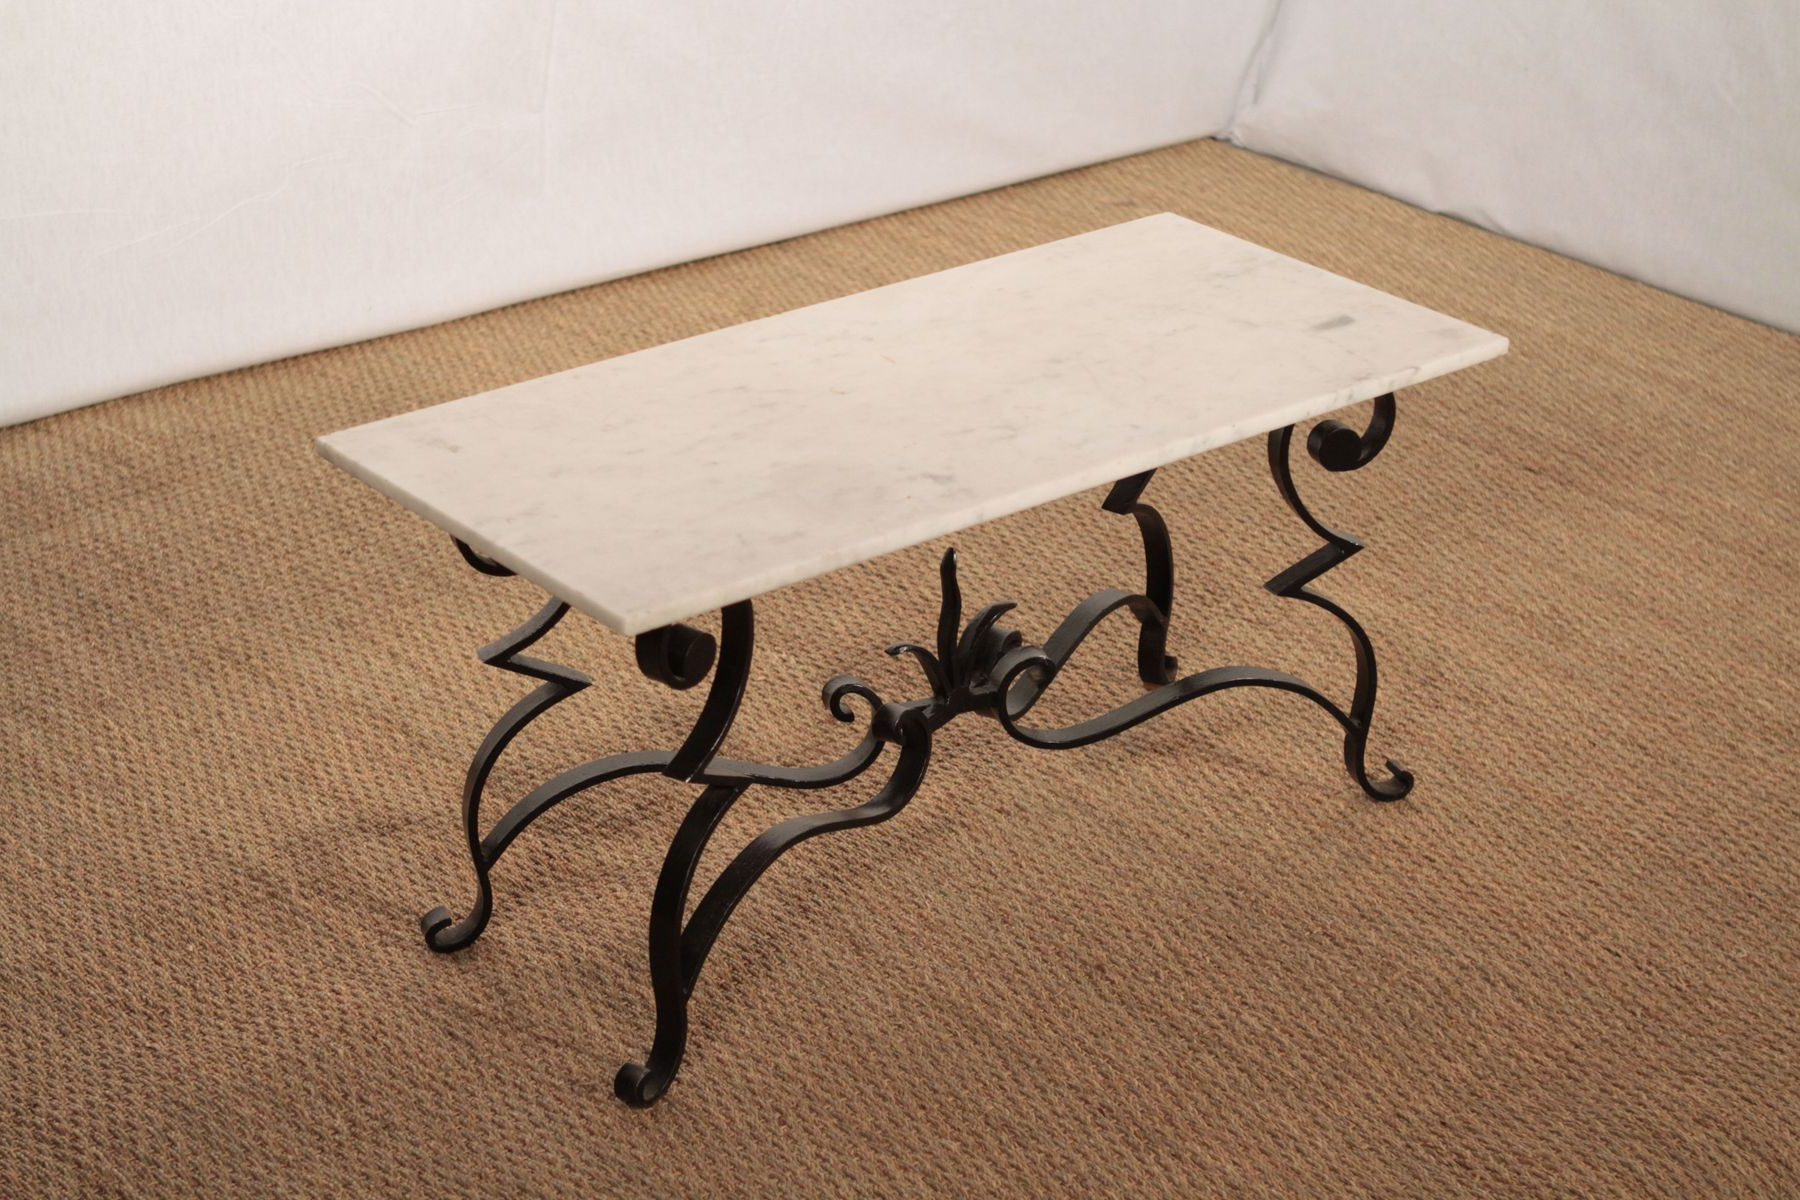 Best And Newest Iron Marble Coffee Tables In Wrought Iron And Marble Coffee Table For Sale At Pamono (View 4 of 20)